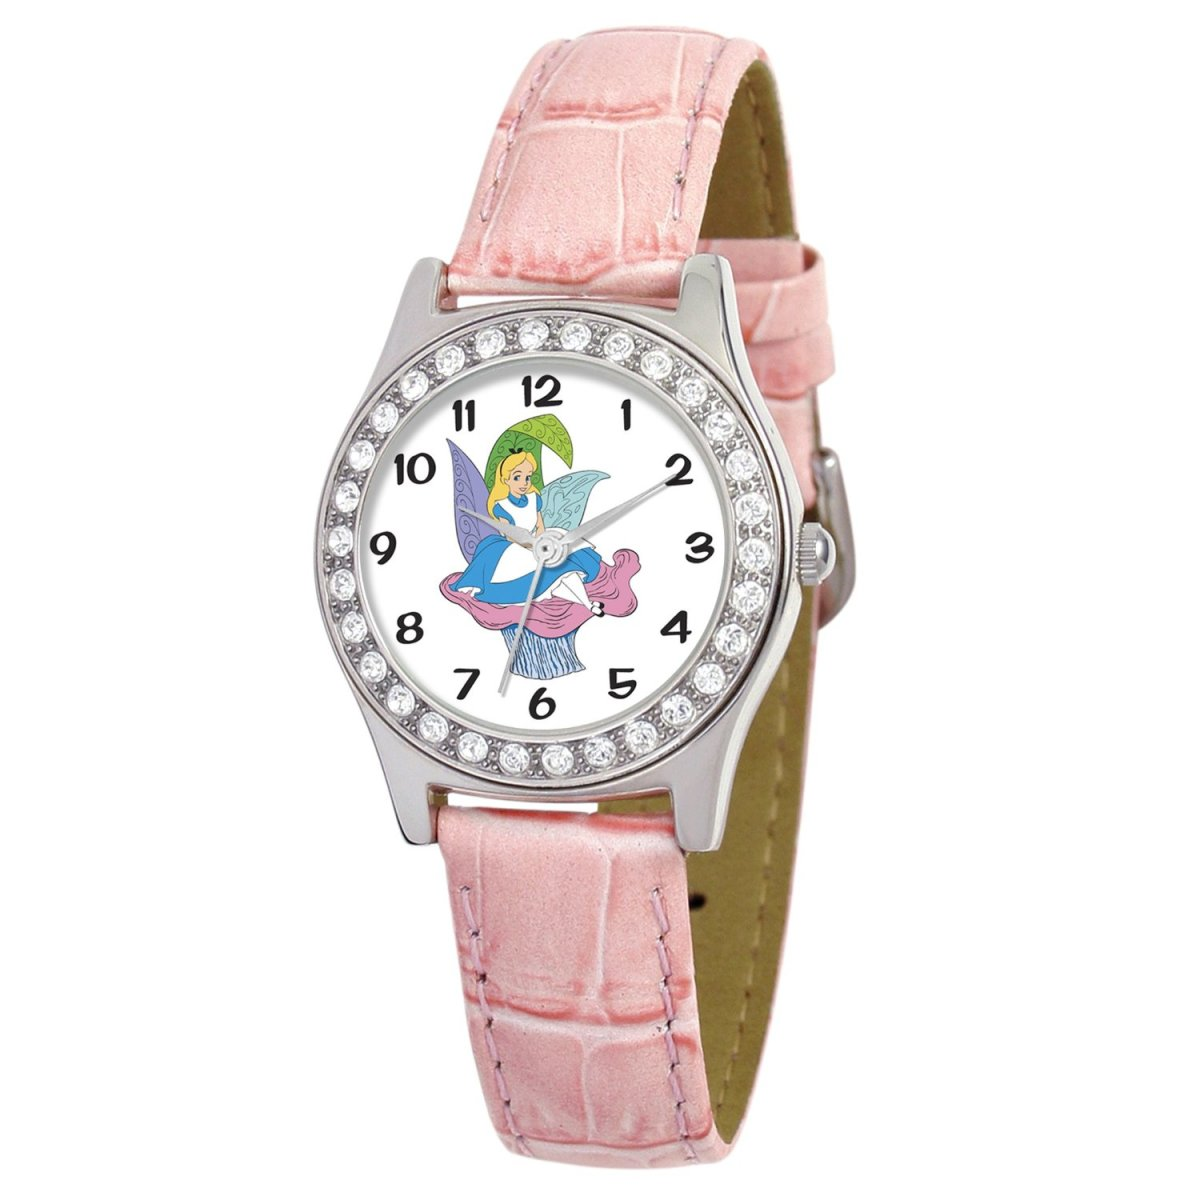 Disney Women's D1501S016 Queen Collection Alice in Wonderland Pink Leather Strap Watch by Disney